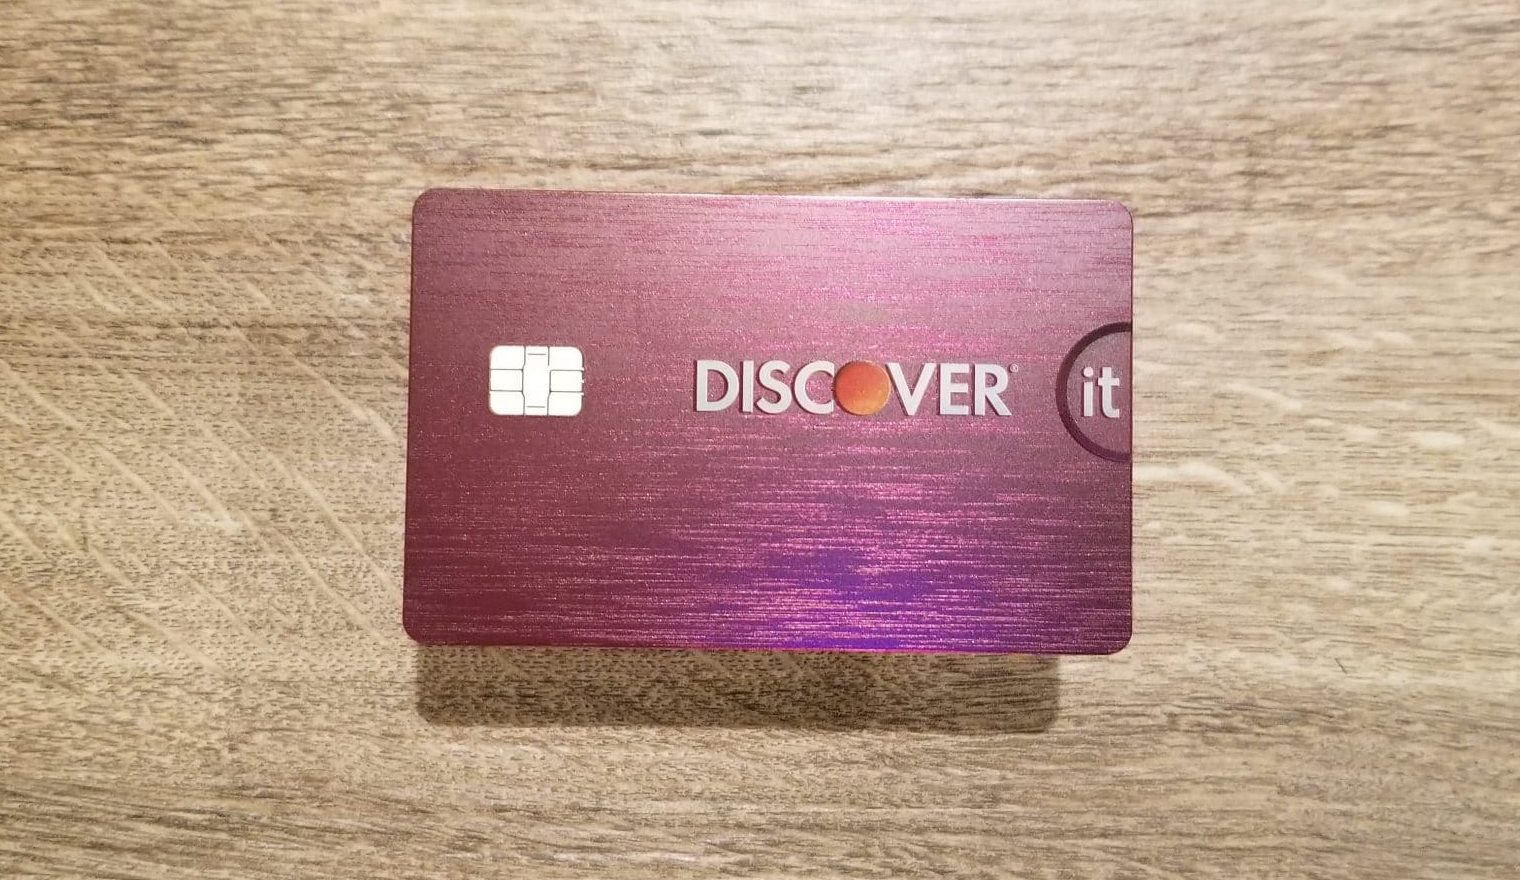 Get $6 Amazon Credit When You Add Discover Card (YMMV) - Danny